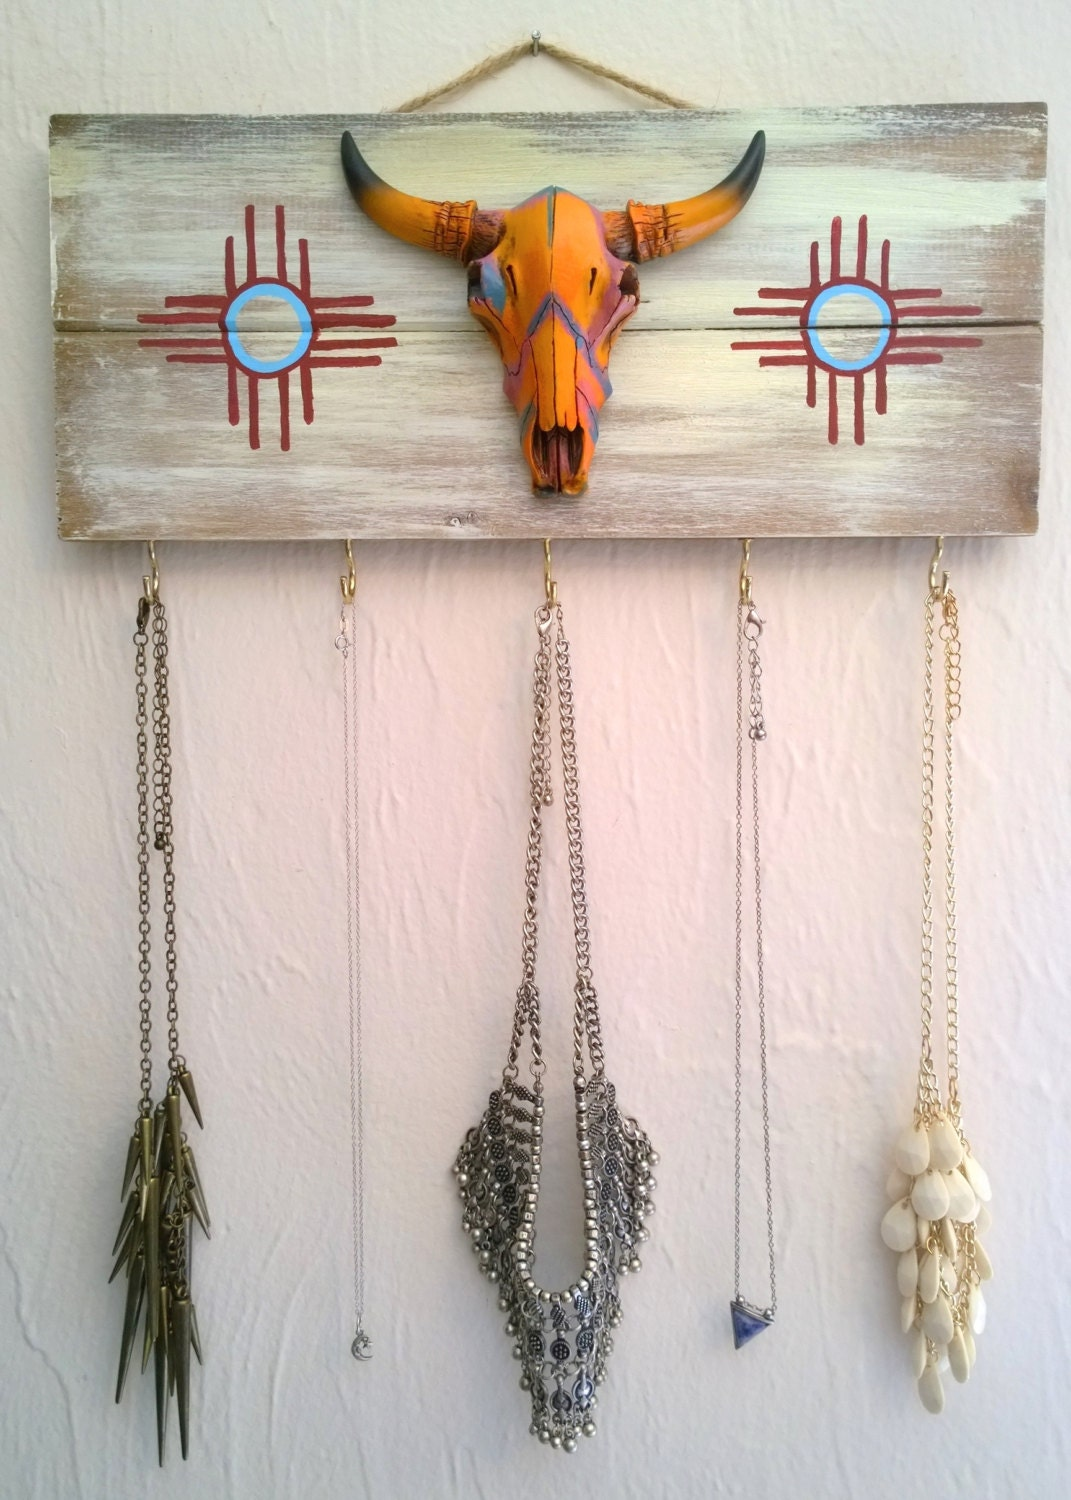 Longhorn Skull Art Jewelry Display Texas Decor Necklace